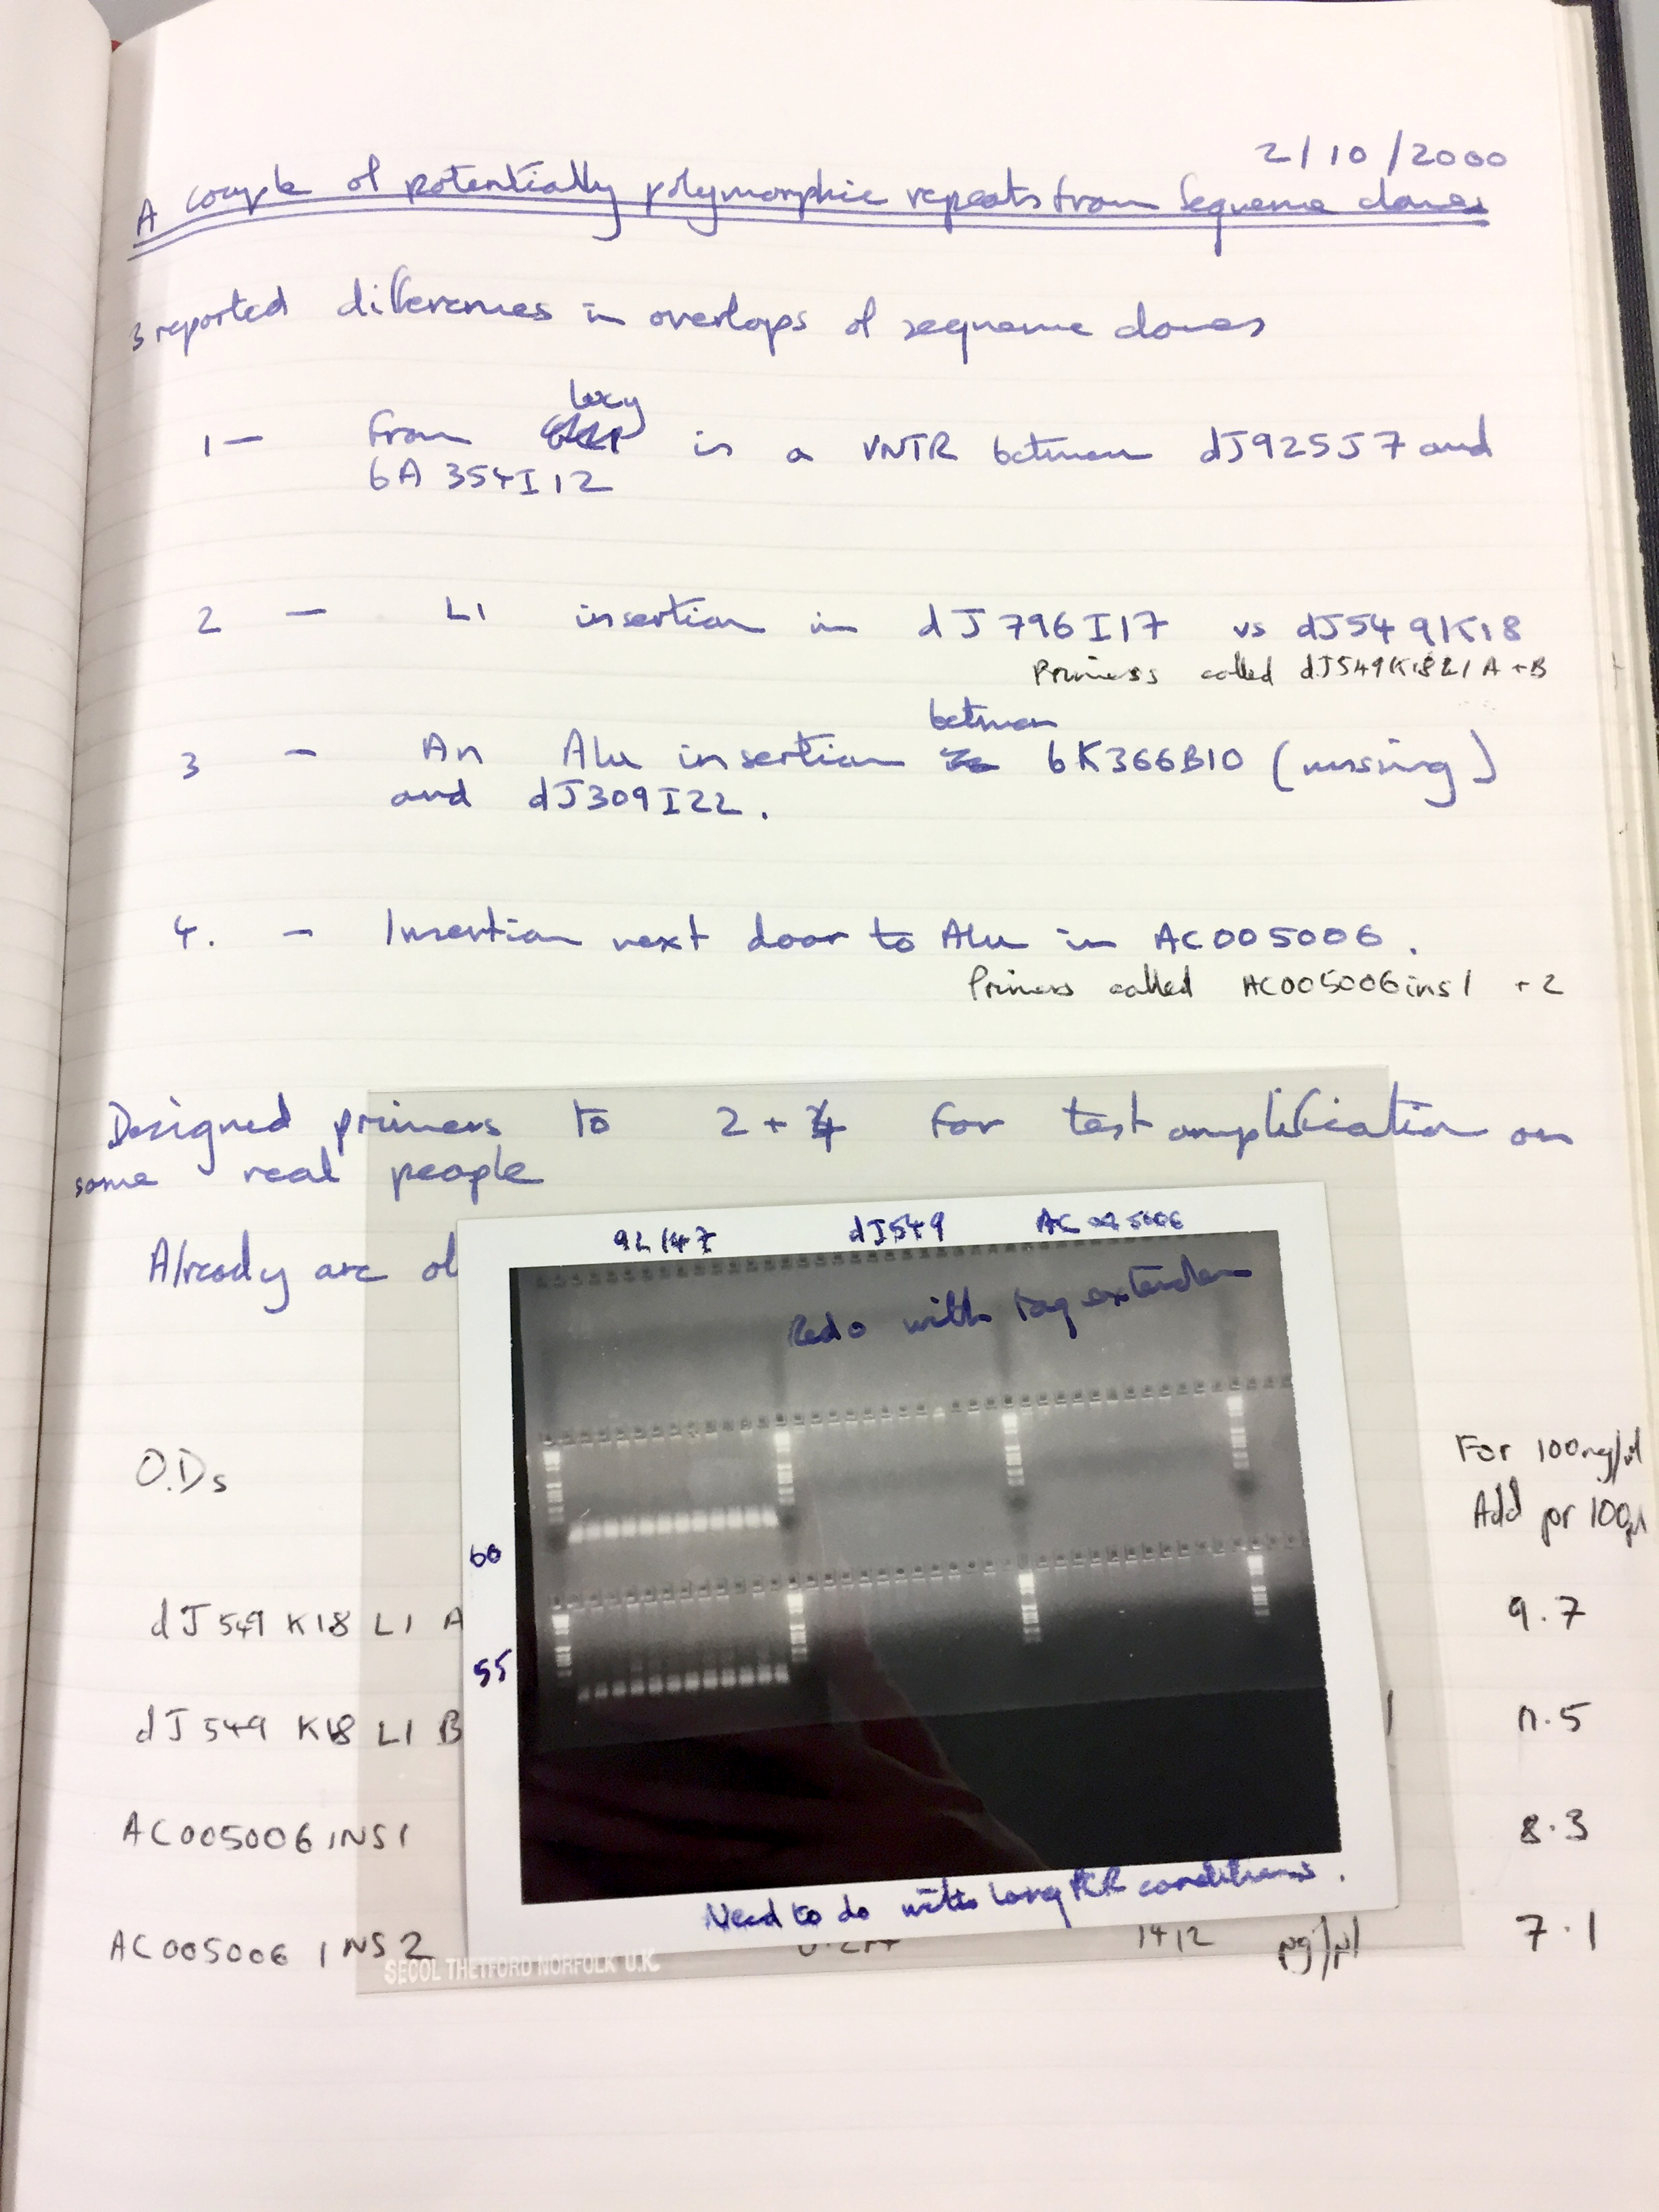 Single page from a laboratory notebook, dated 2/10/2000. It has notes in blue and black pen and an image of a gel.